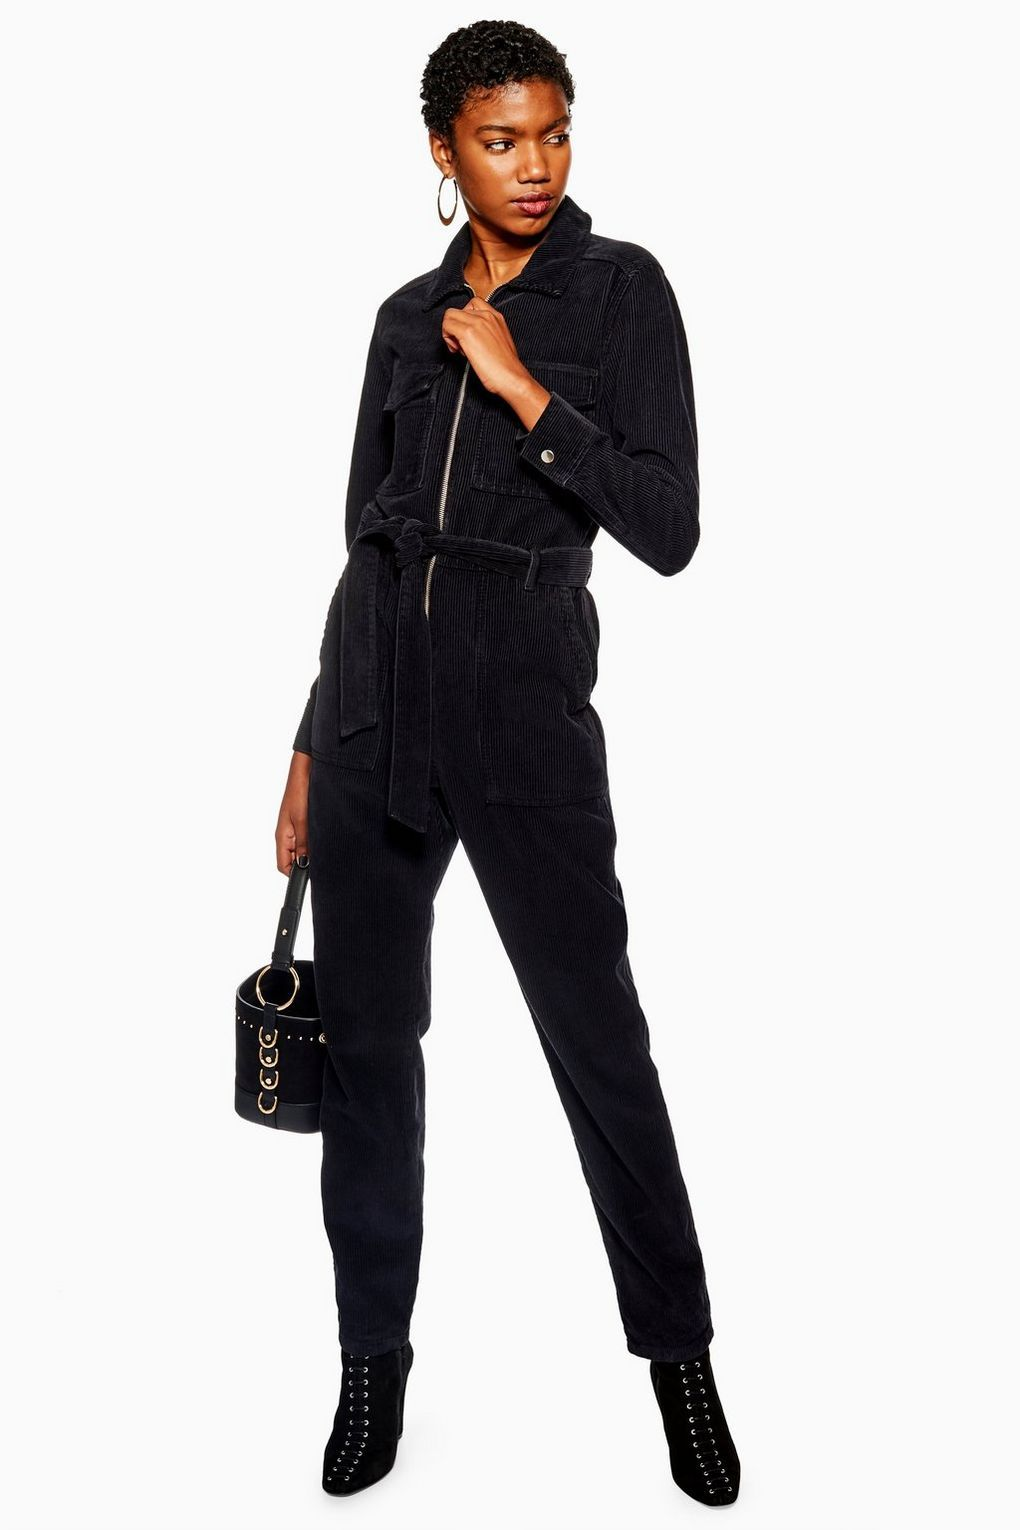 1cba9915585e Black Corduroy Boilersuit - Playsuits and Jumpsuits - Clothing - Topshop  Europe